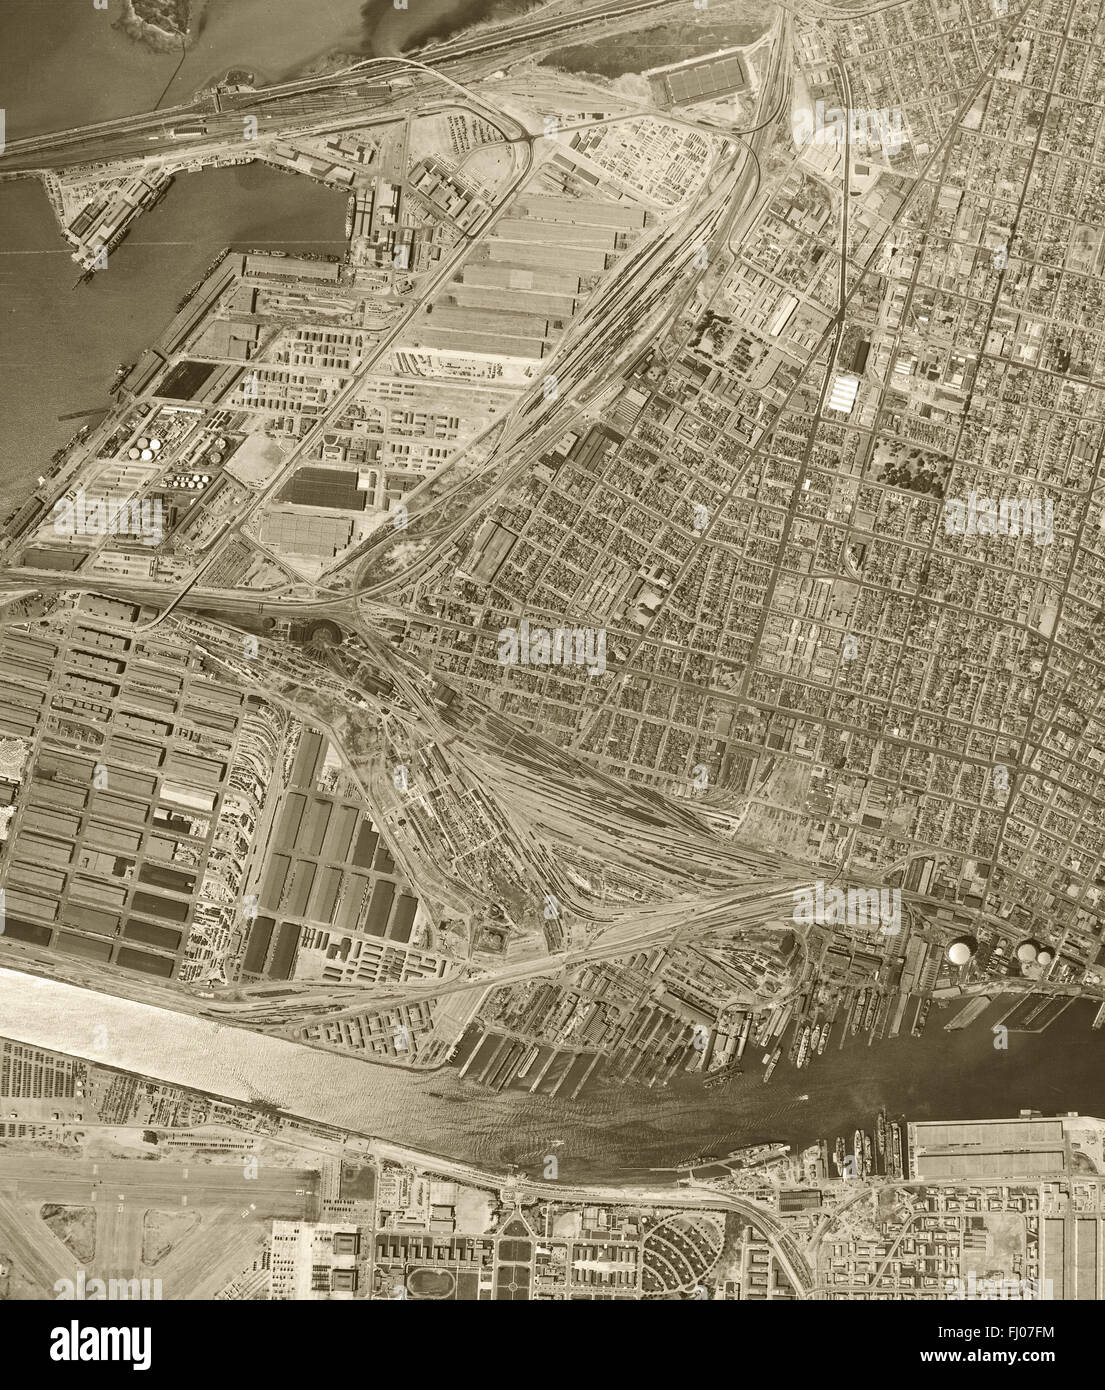 historical aerial photograph of the Port of Oakland, Oakland, California, 1946 - Stock Image